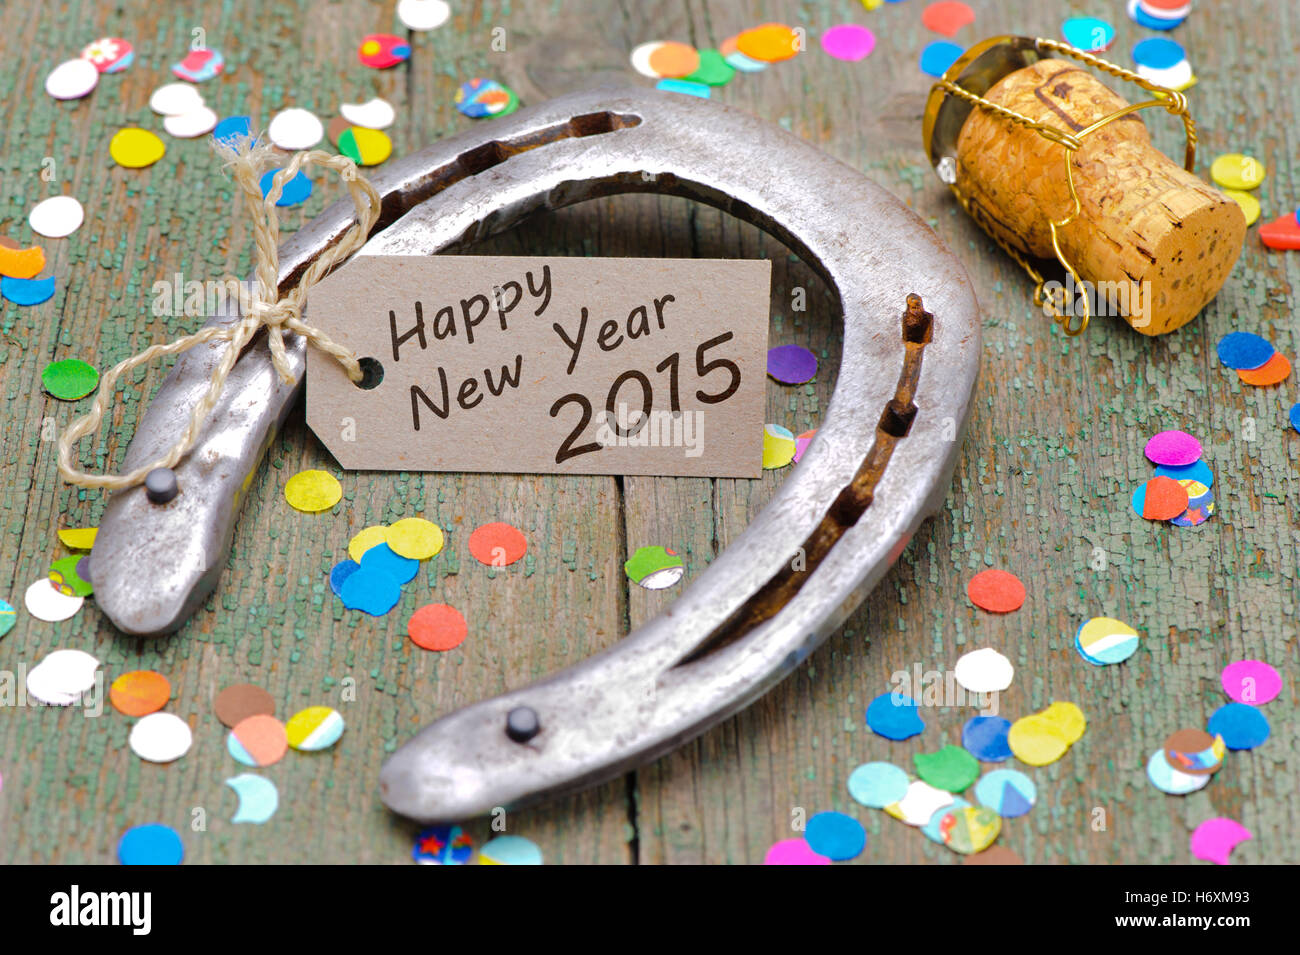 horseshoe for good luck for the new year 2015 Stock Photo